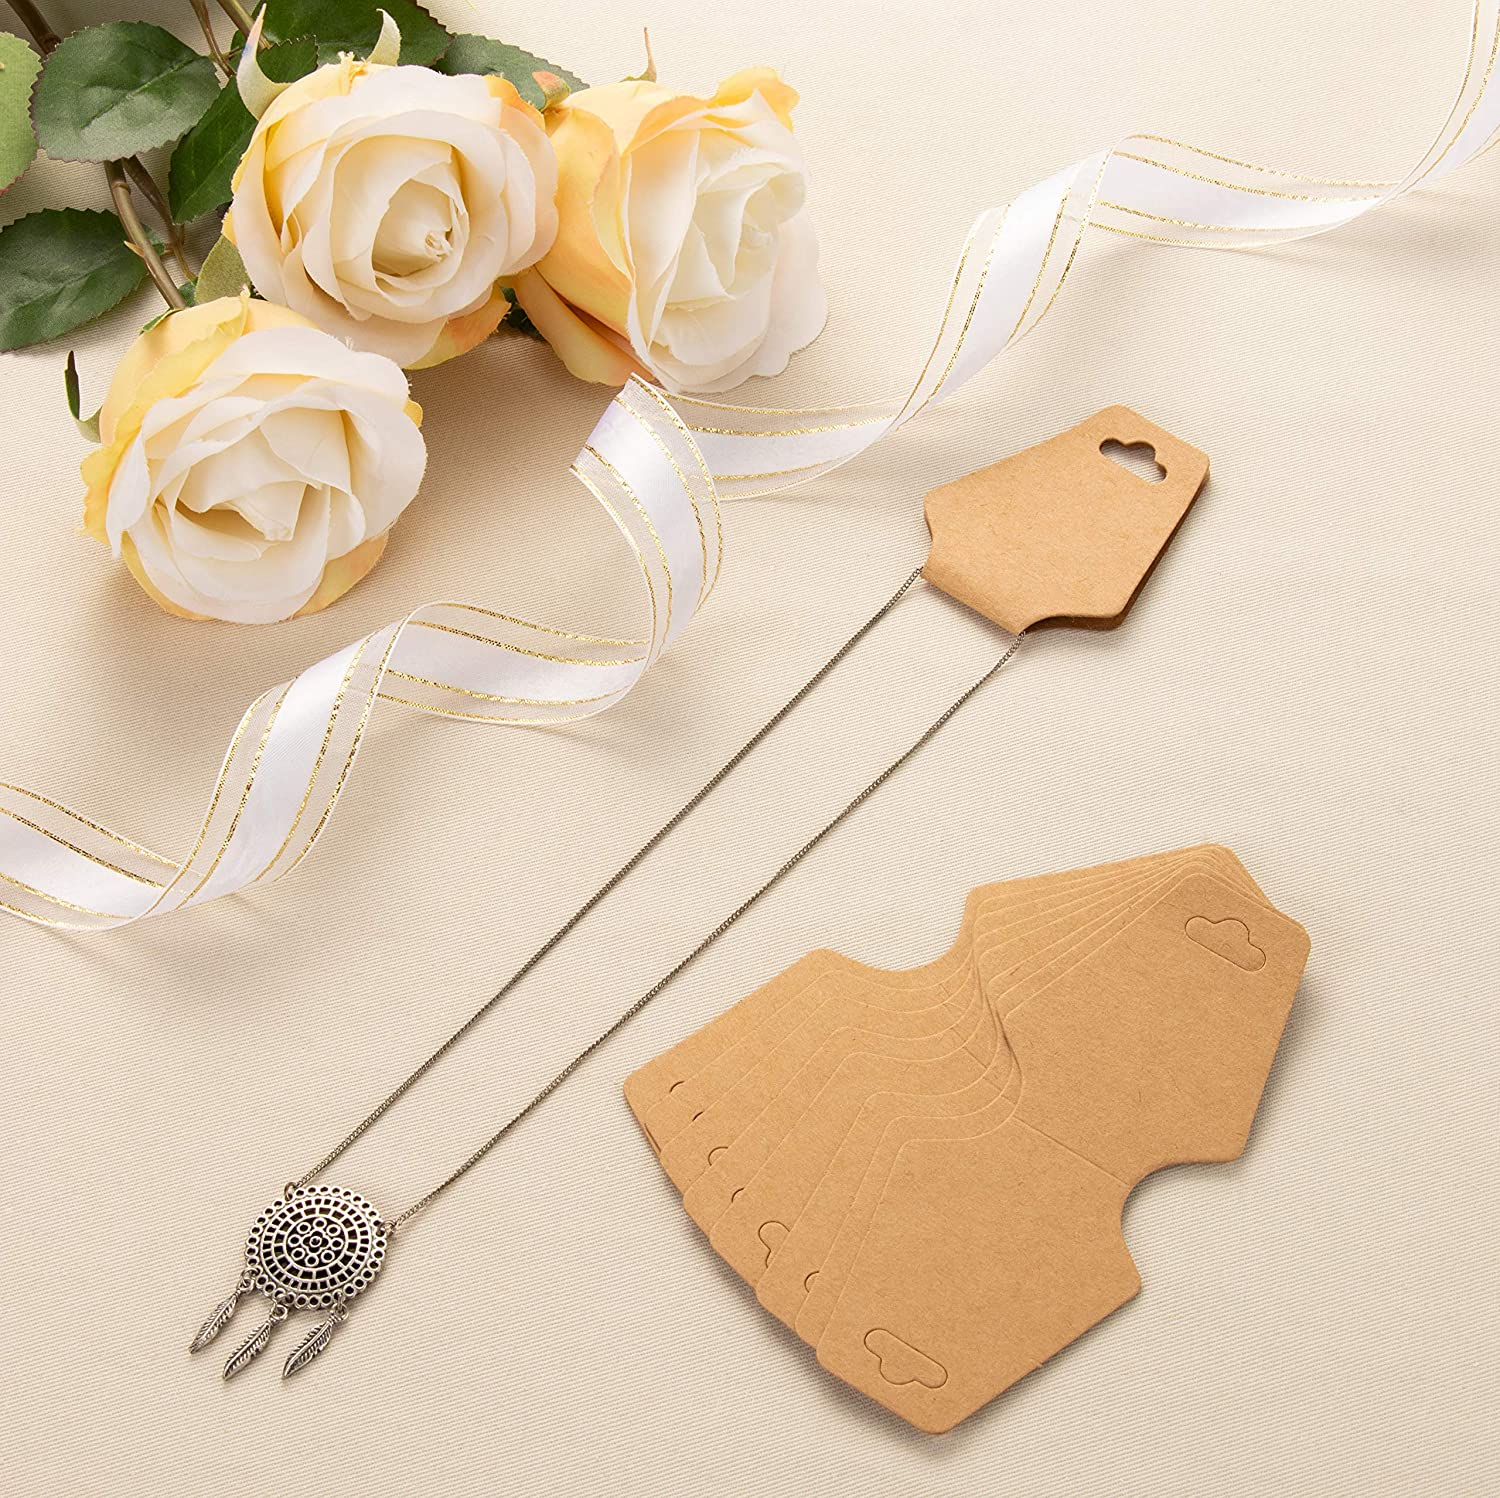 4.87 x 2 Inches Brown Necklace Cards 200-Pack Necklace Card Holder Kraft Paper Jewelry Display Hanging Cards for Necklaces Jewelry Hang Tags Bracelets